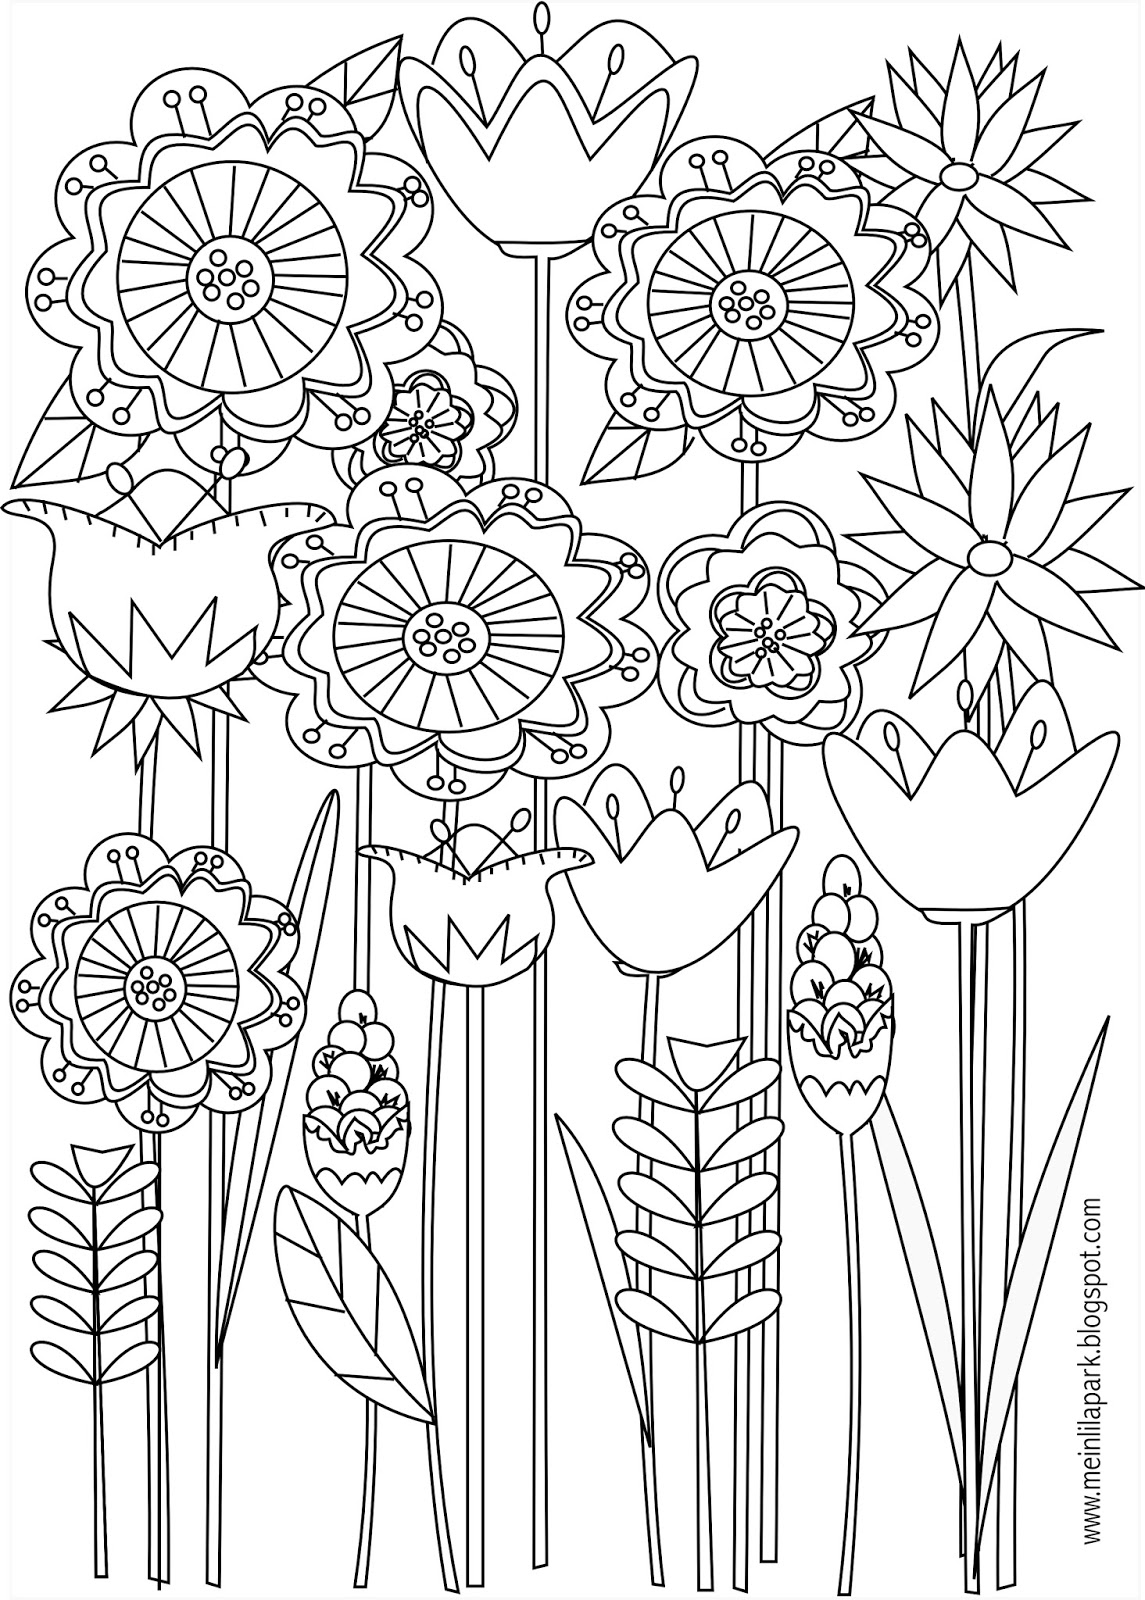 Free printable spring coloring pages - Ausmalbilder ... | spring flower coloring pages